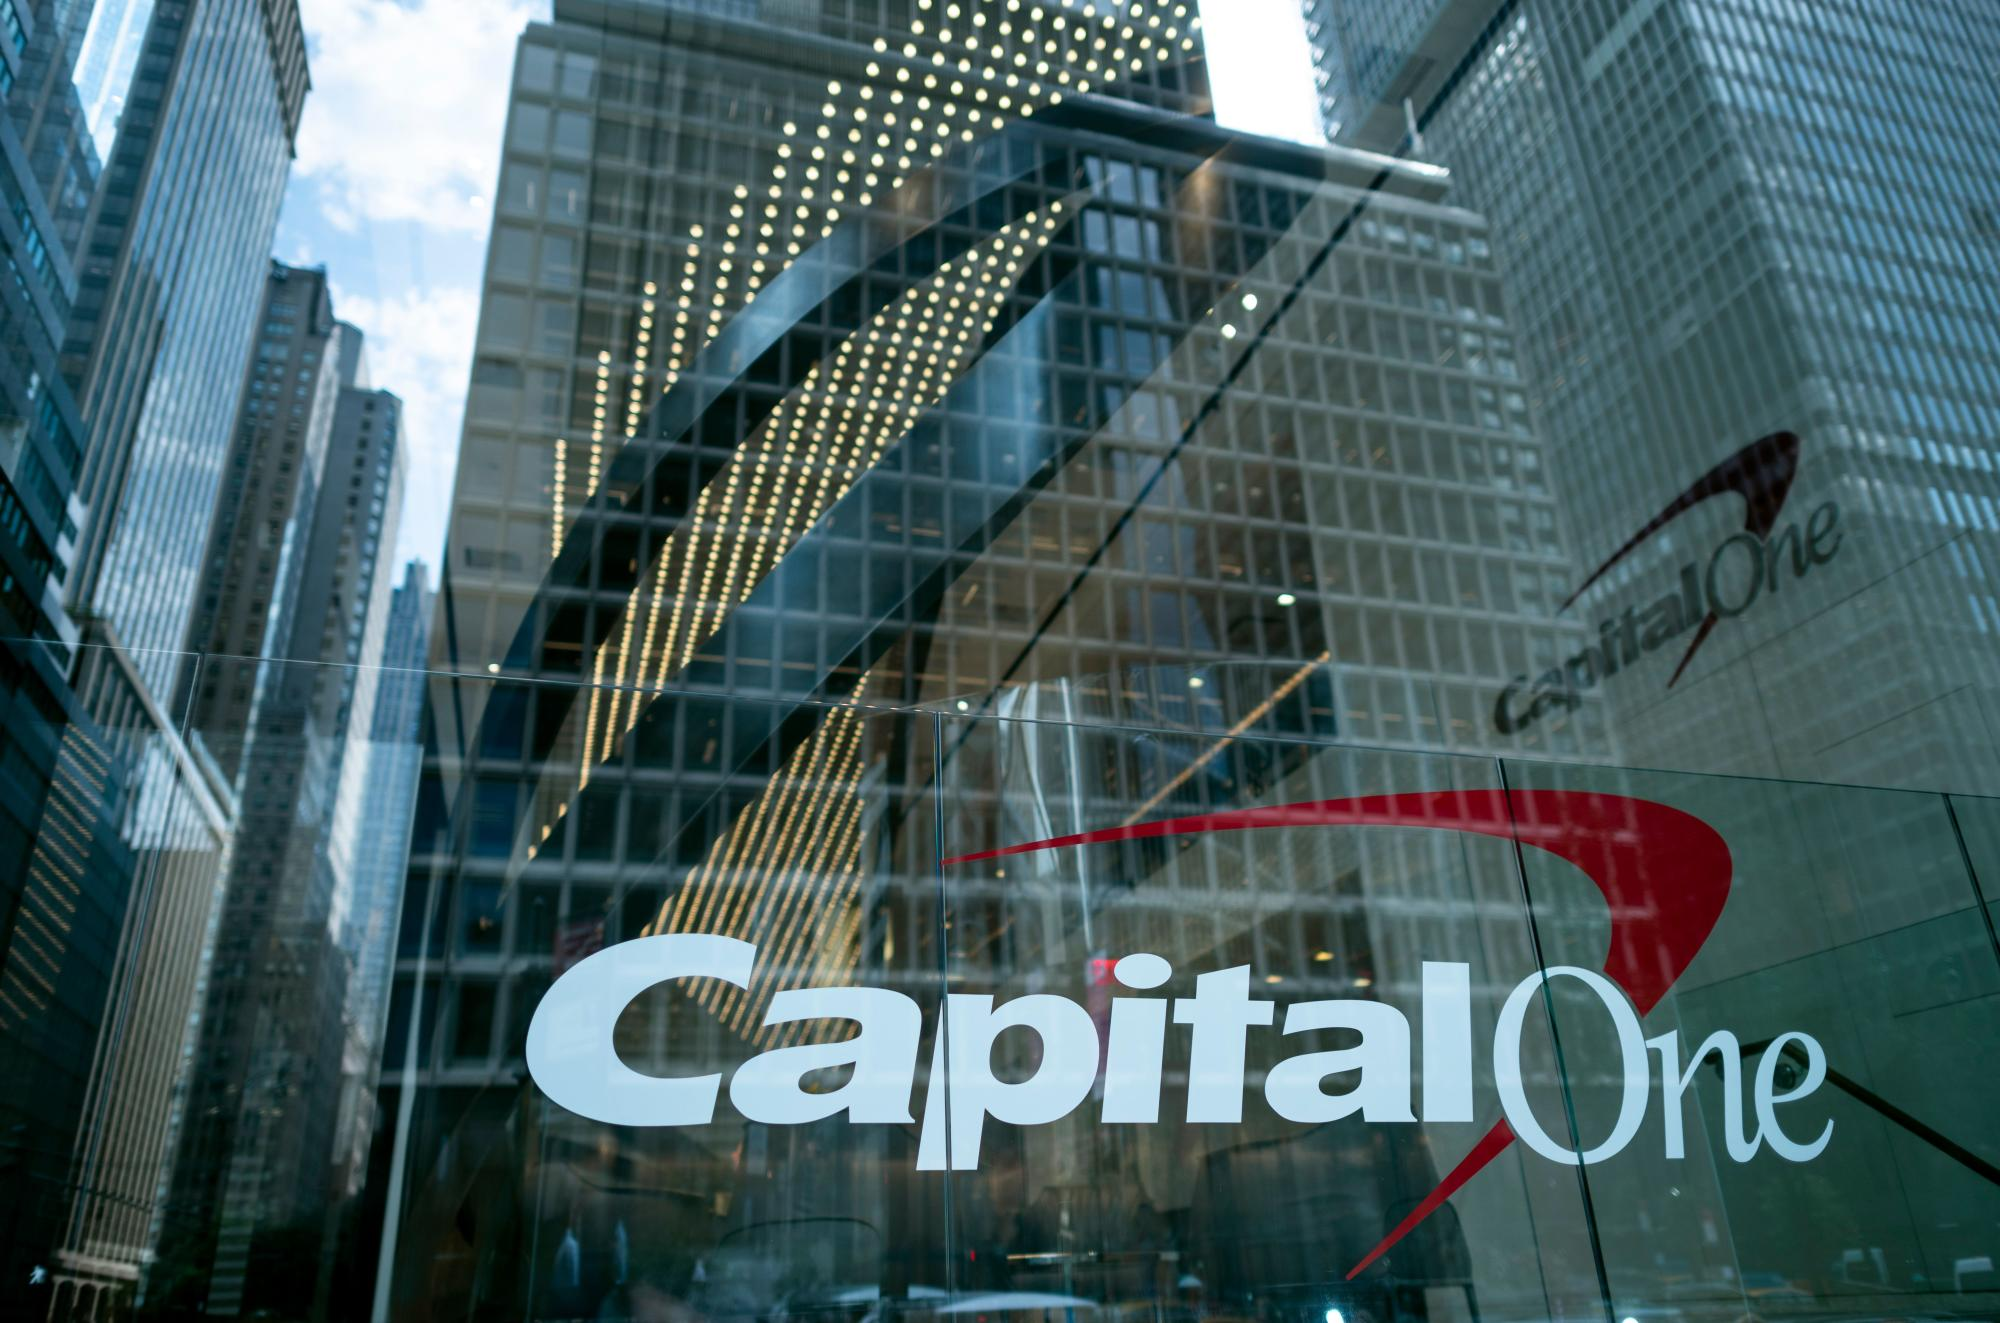 Capital One ending Costco and Hudson's Bay contracts, closing offices in Montreal and Toronto